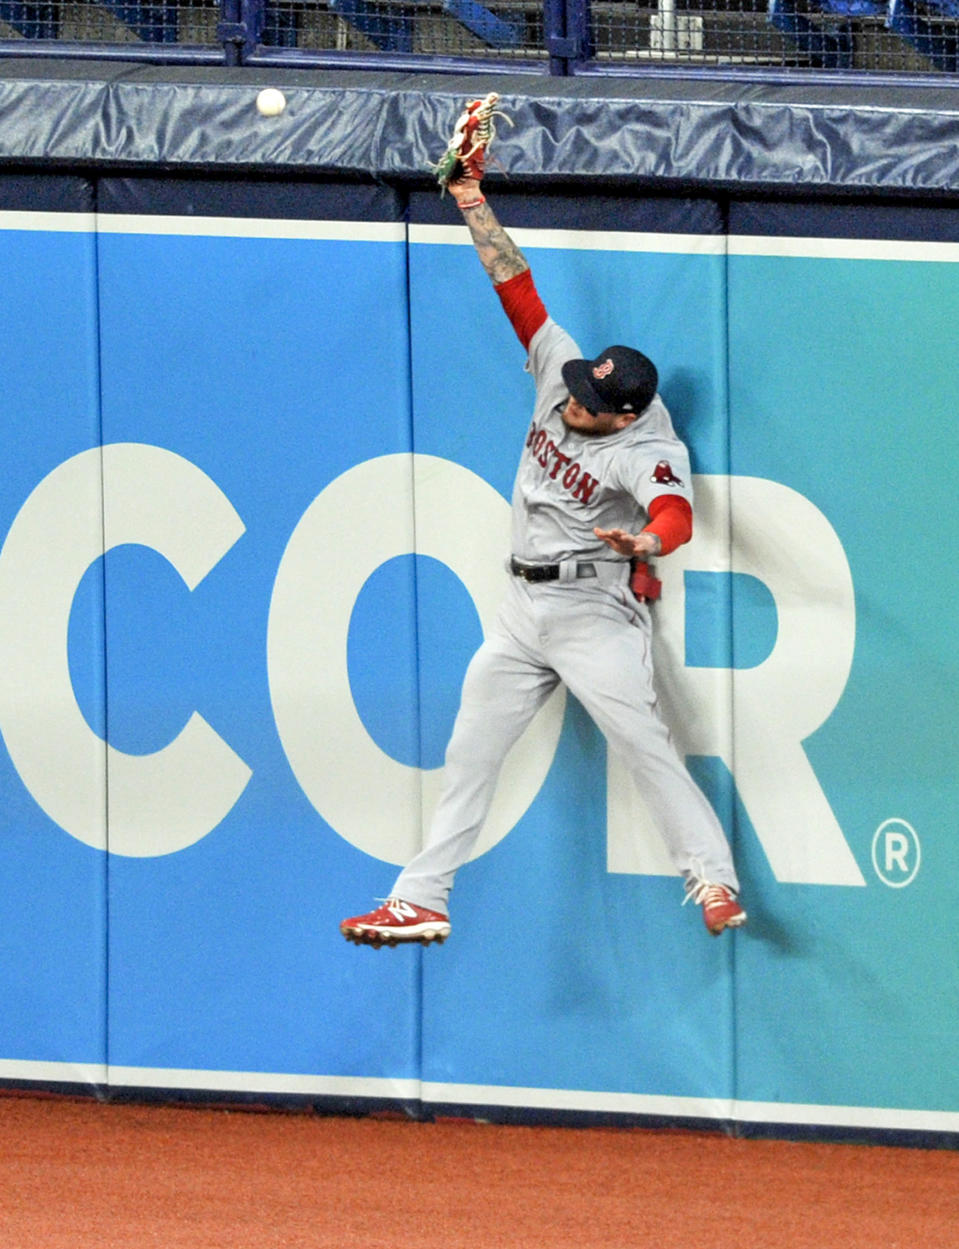 Boston Red Sox right fielder Alex Verdugo comes up short as he leaps for a double off the wall hit by Tampa Bay Rays' Yandy Diaz during the first inning of a baseball game Wednesday, Aug. 5, 2020, in St. Petersburg, Fla. (AP Photo/Steve Nesius)